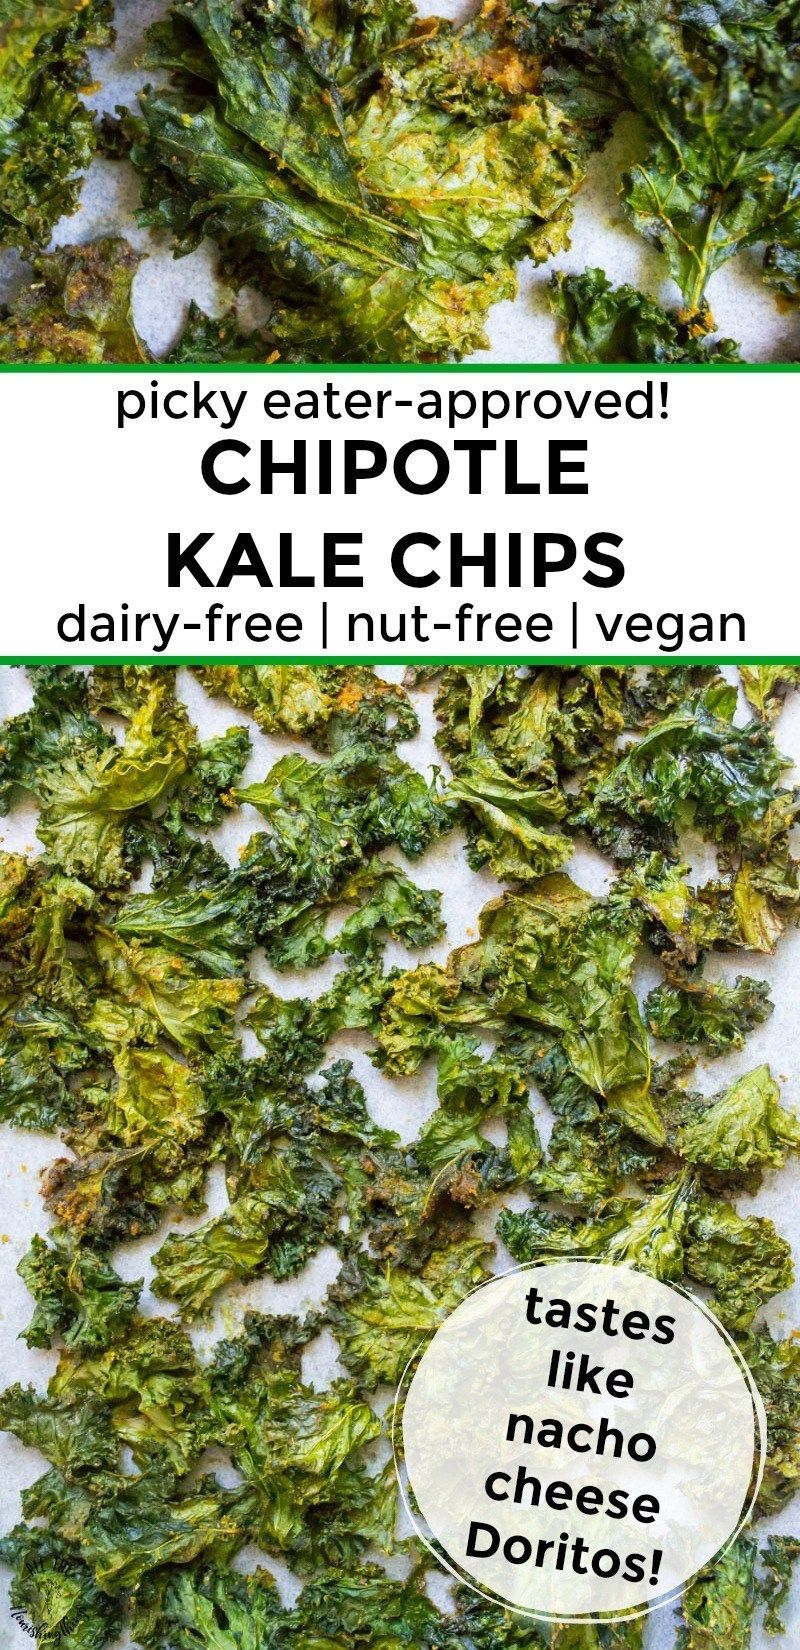 The BEST Kale Chips Ever: Chipotle Kale Chips (dairy-free, nut-free, vegan)